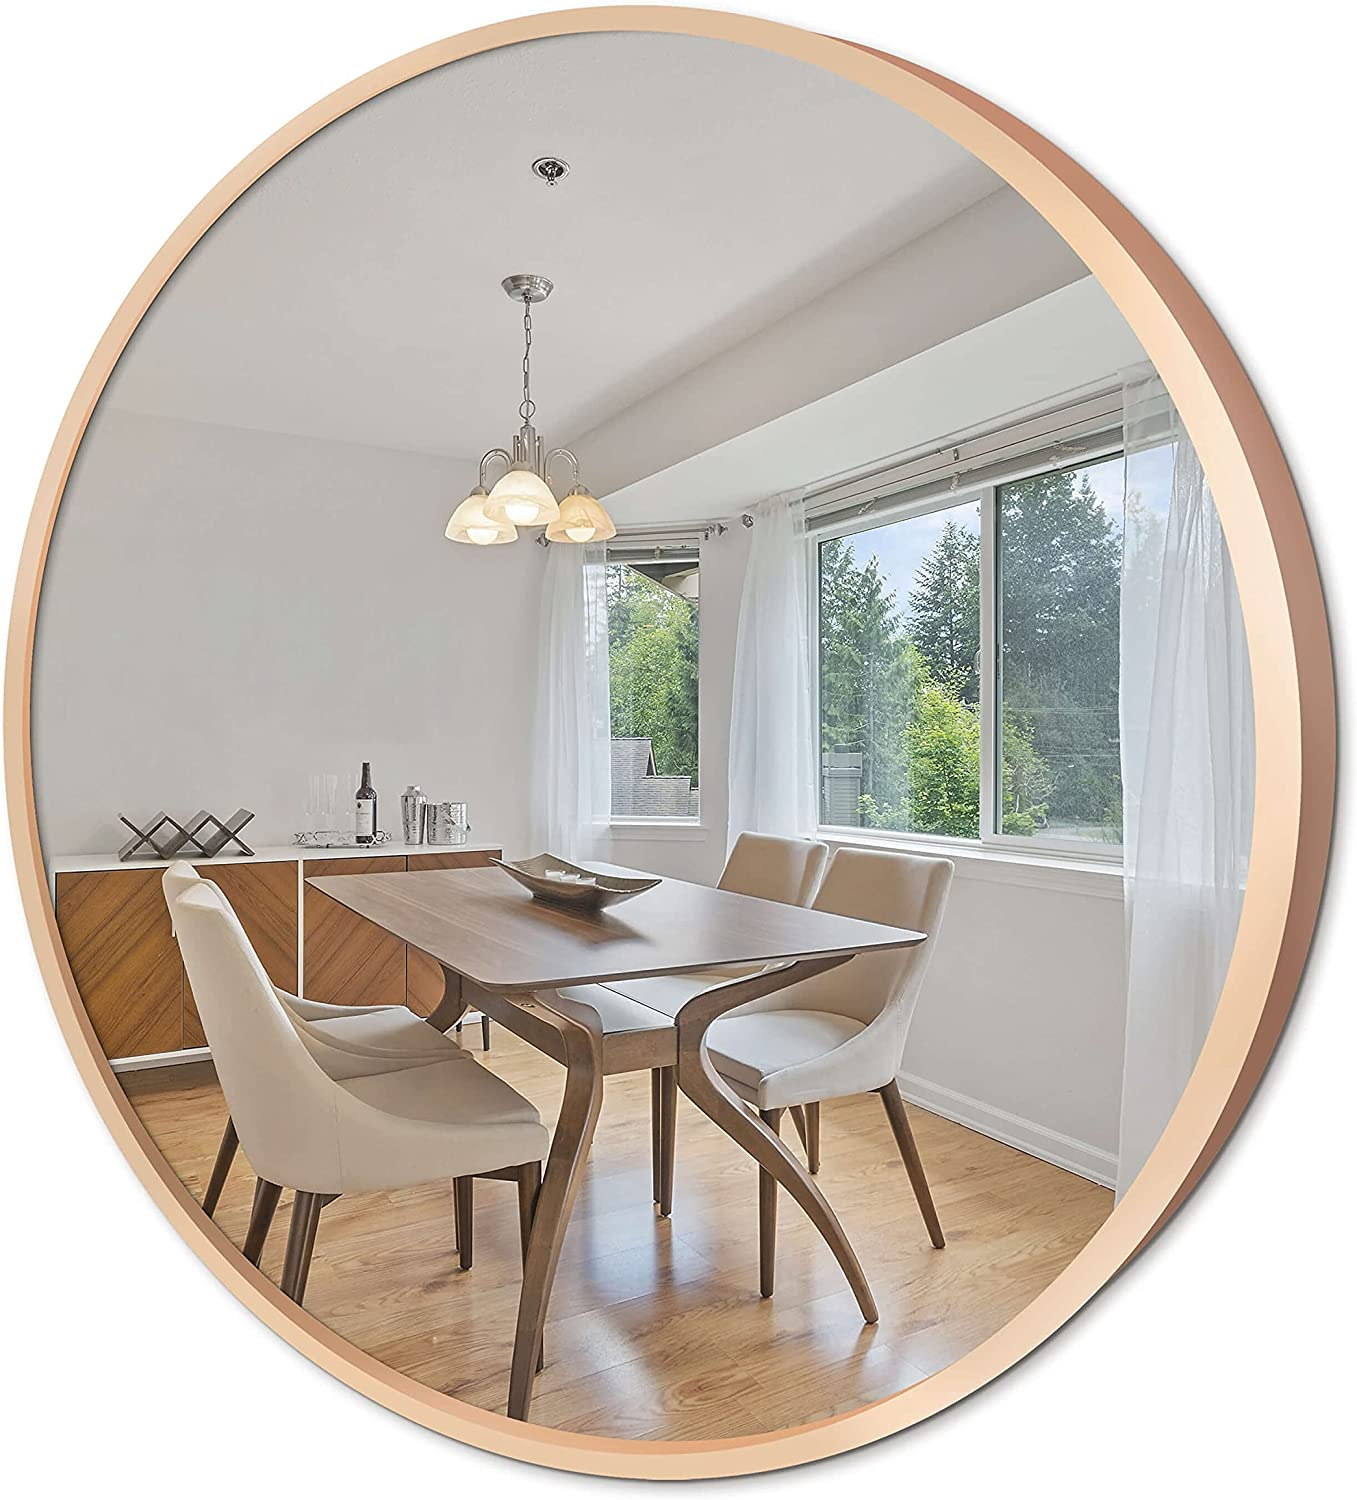 Round Wall Mirror with Metal Frame - Elegant Champagne Gold Brushed Aluminium Framed Circle Hanging Vanity Mirror for Wall Decor (32